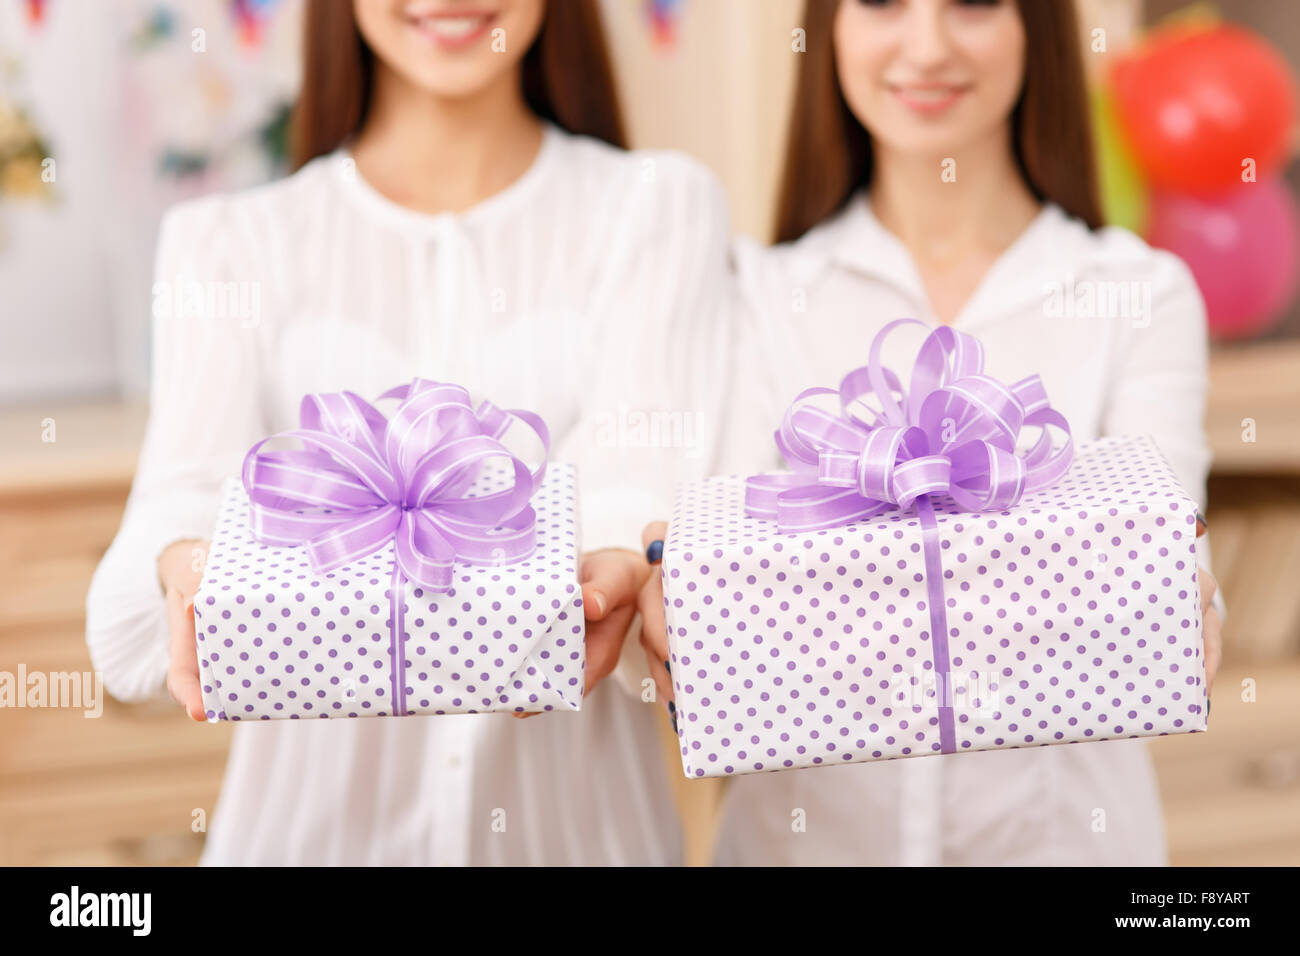 Two young ladies holding presents. - Stock Image